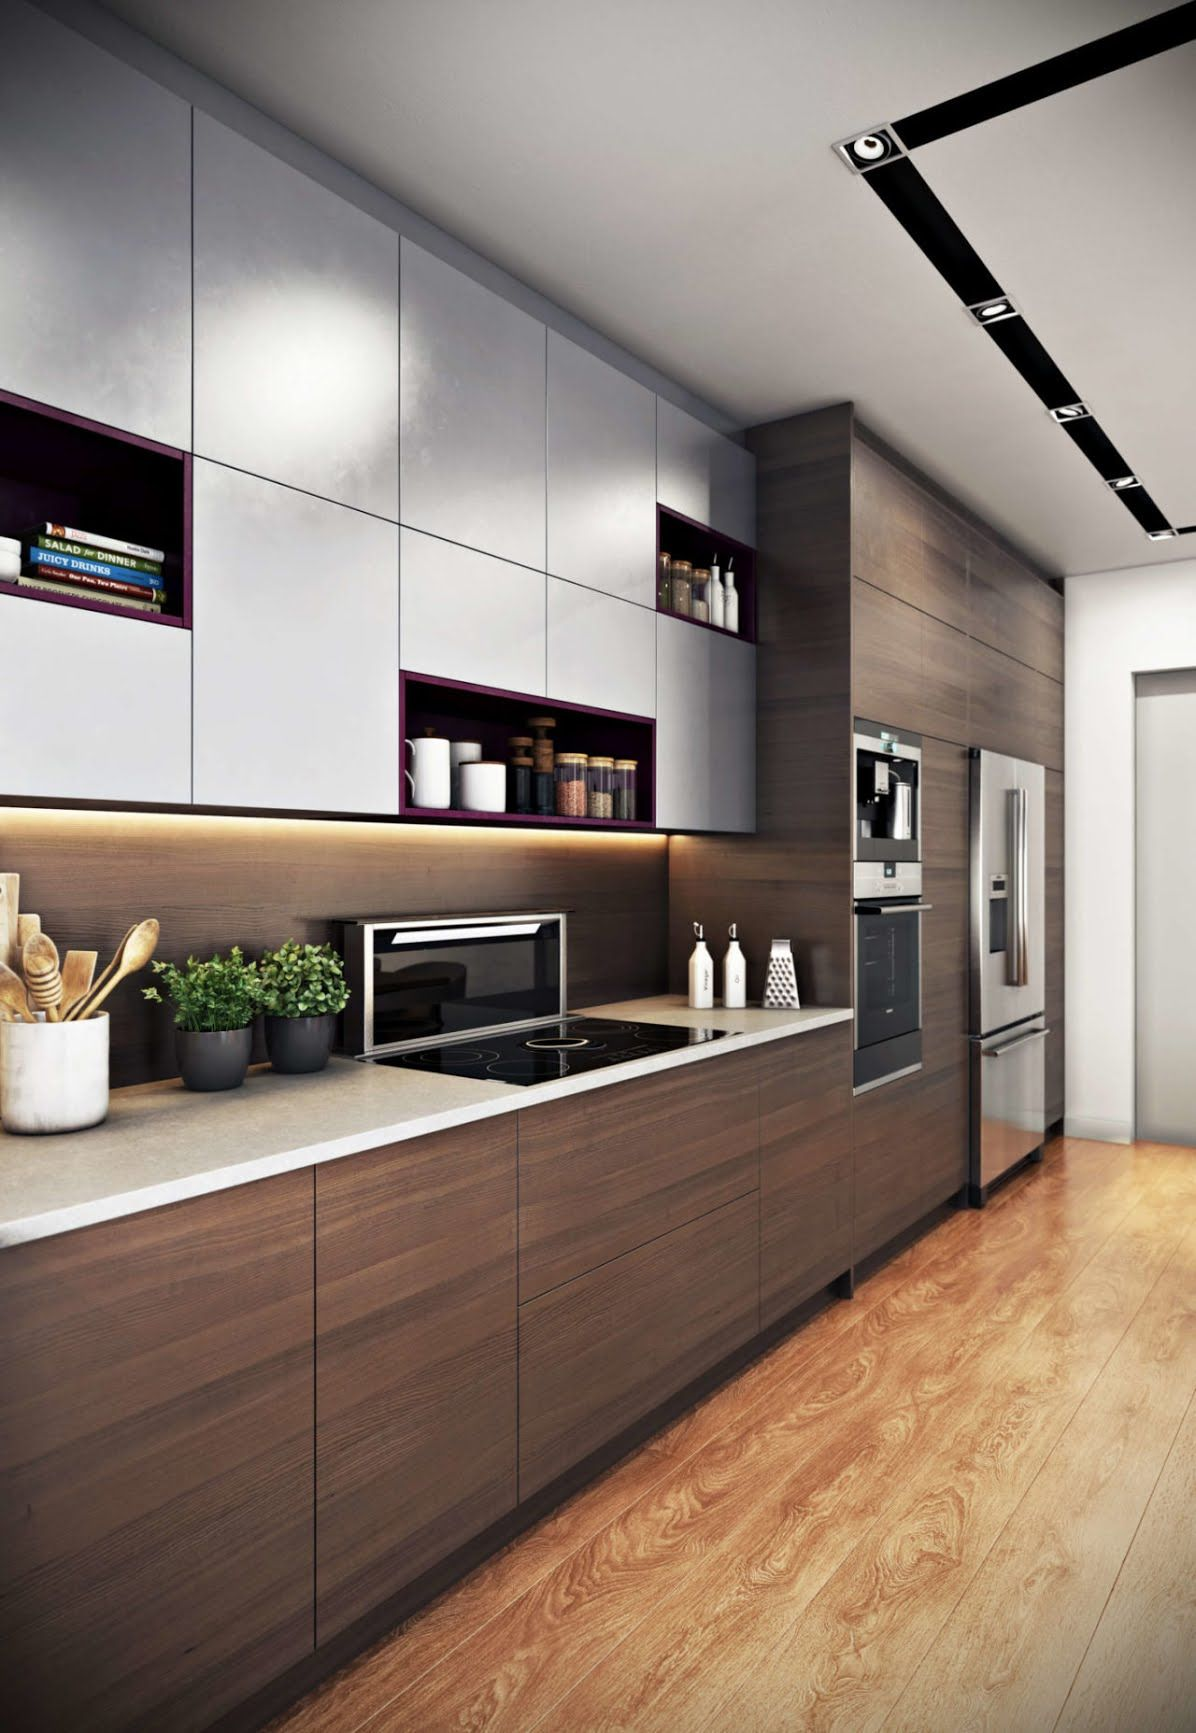 Hdb kitchen window  home interior design u kitchen for ultimate sophistication the